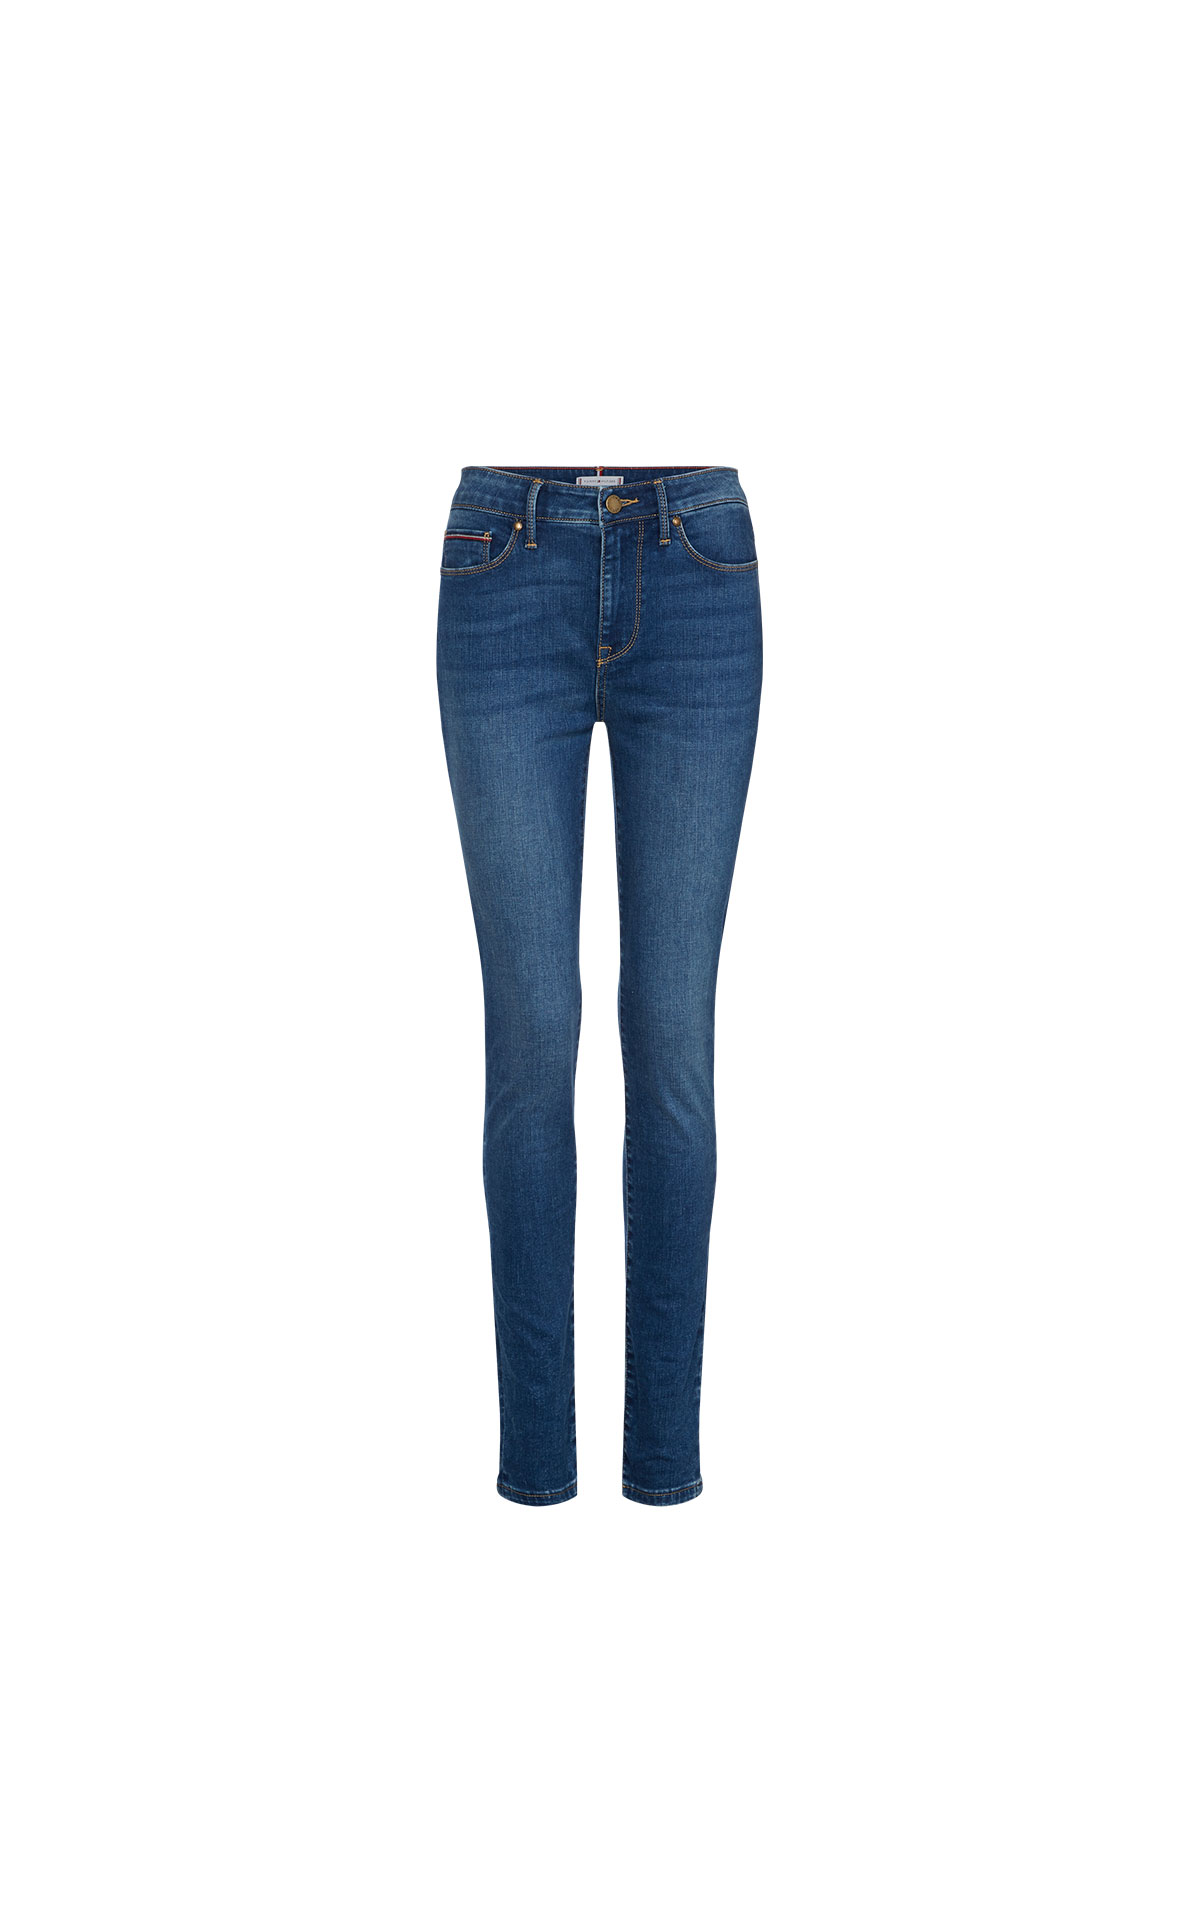 Tommy hilfiger denim milan skinny jeans at The Bicester Village Shopping Collection